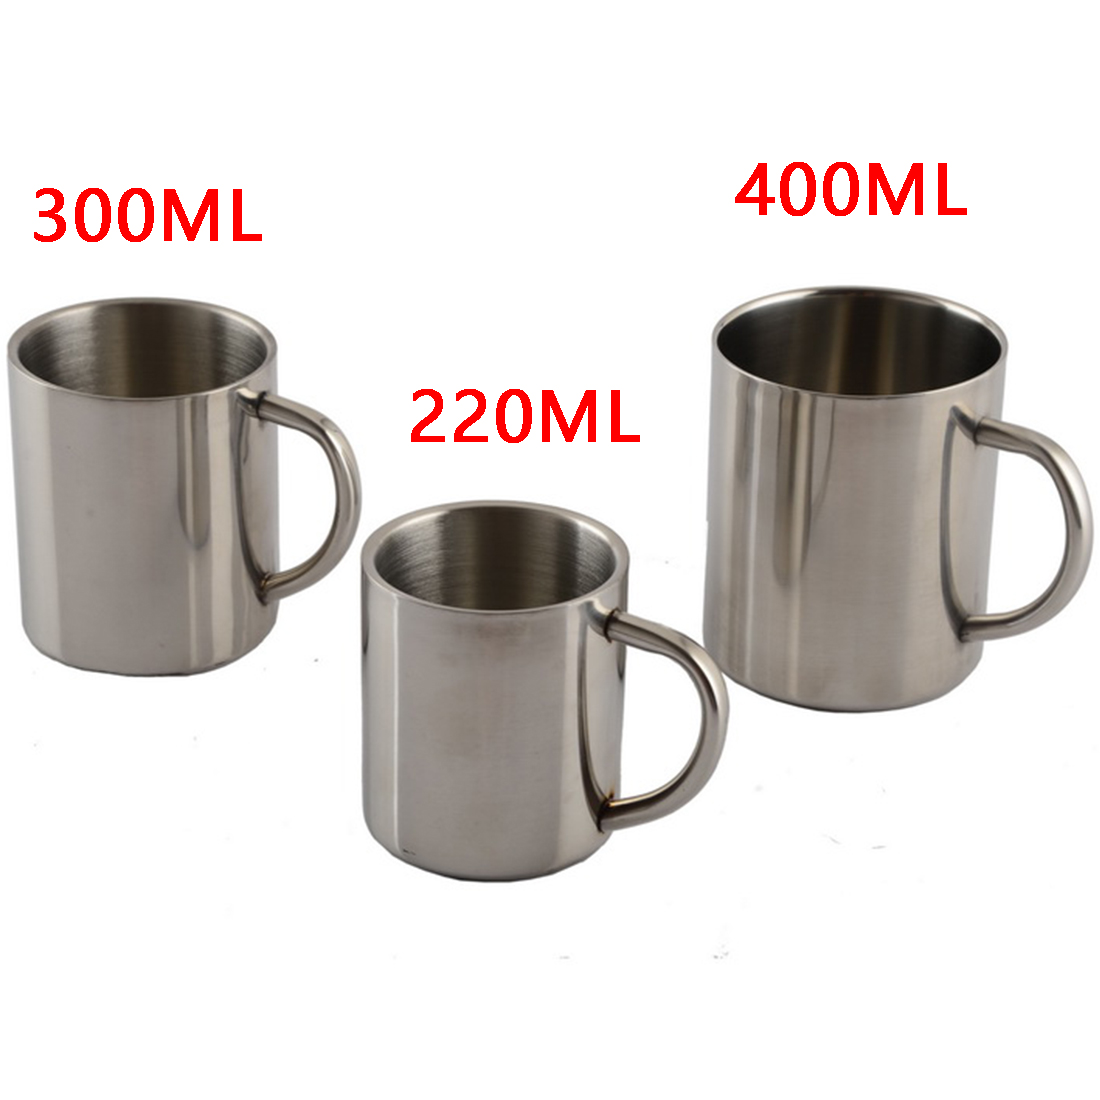 Pet 400ml Portable Filter Travel Cups Drinking Bowls Dog: Top Sale 1pcs New 220ml 300ml 400ml Stainless Steel